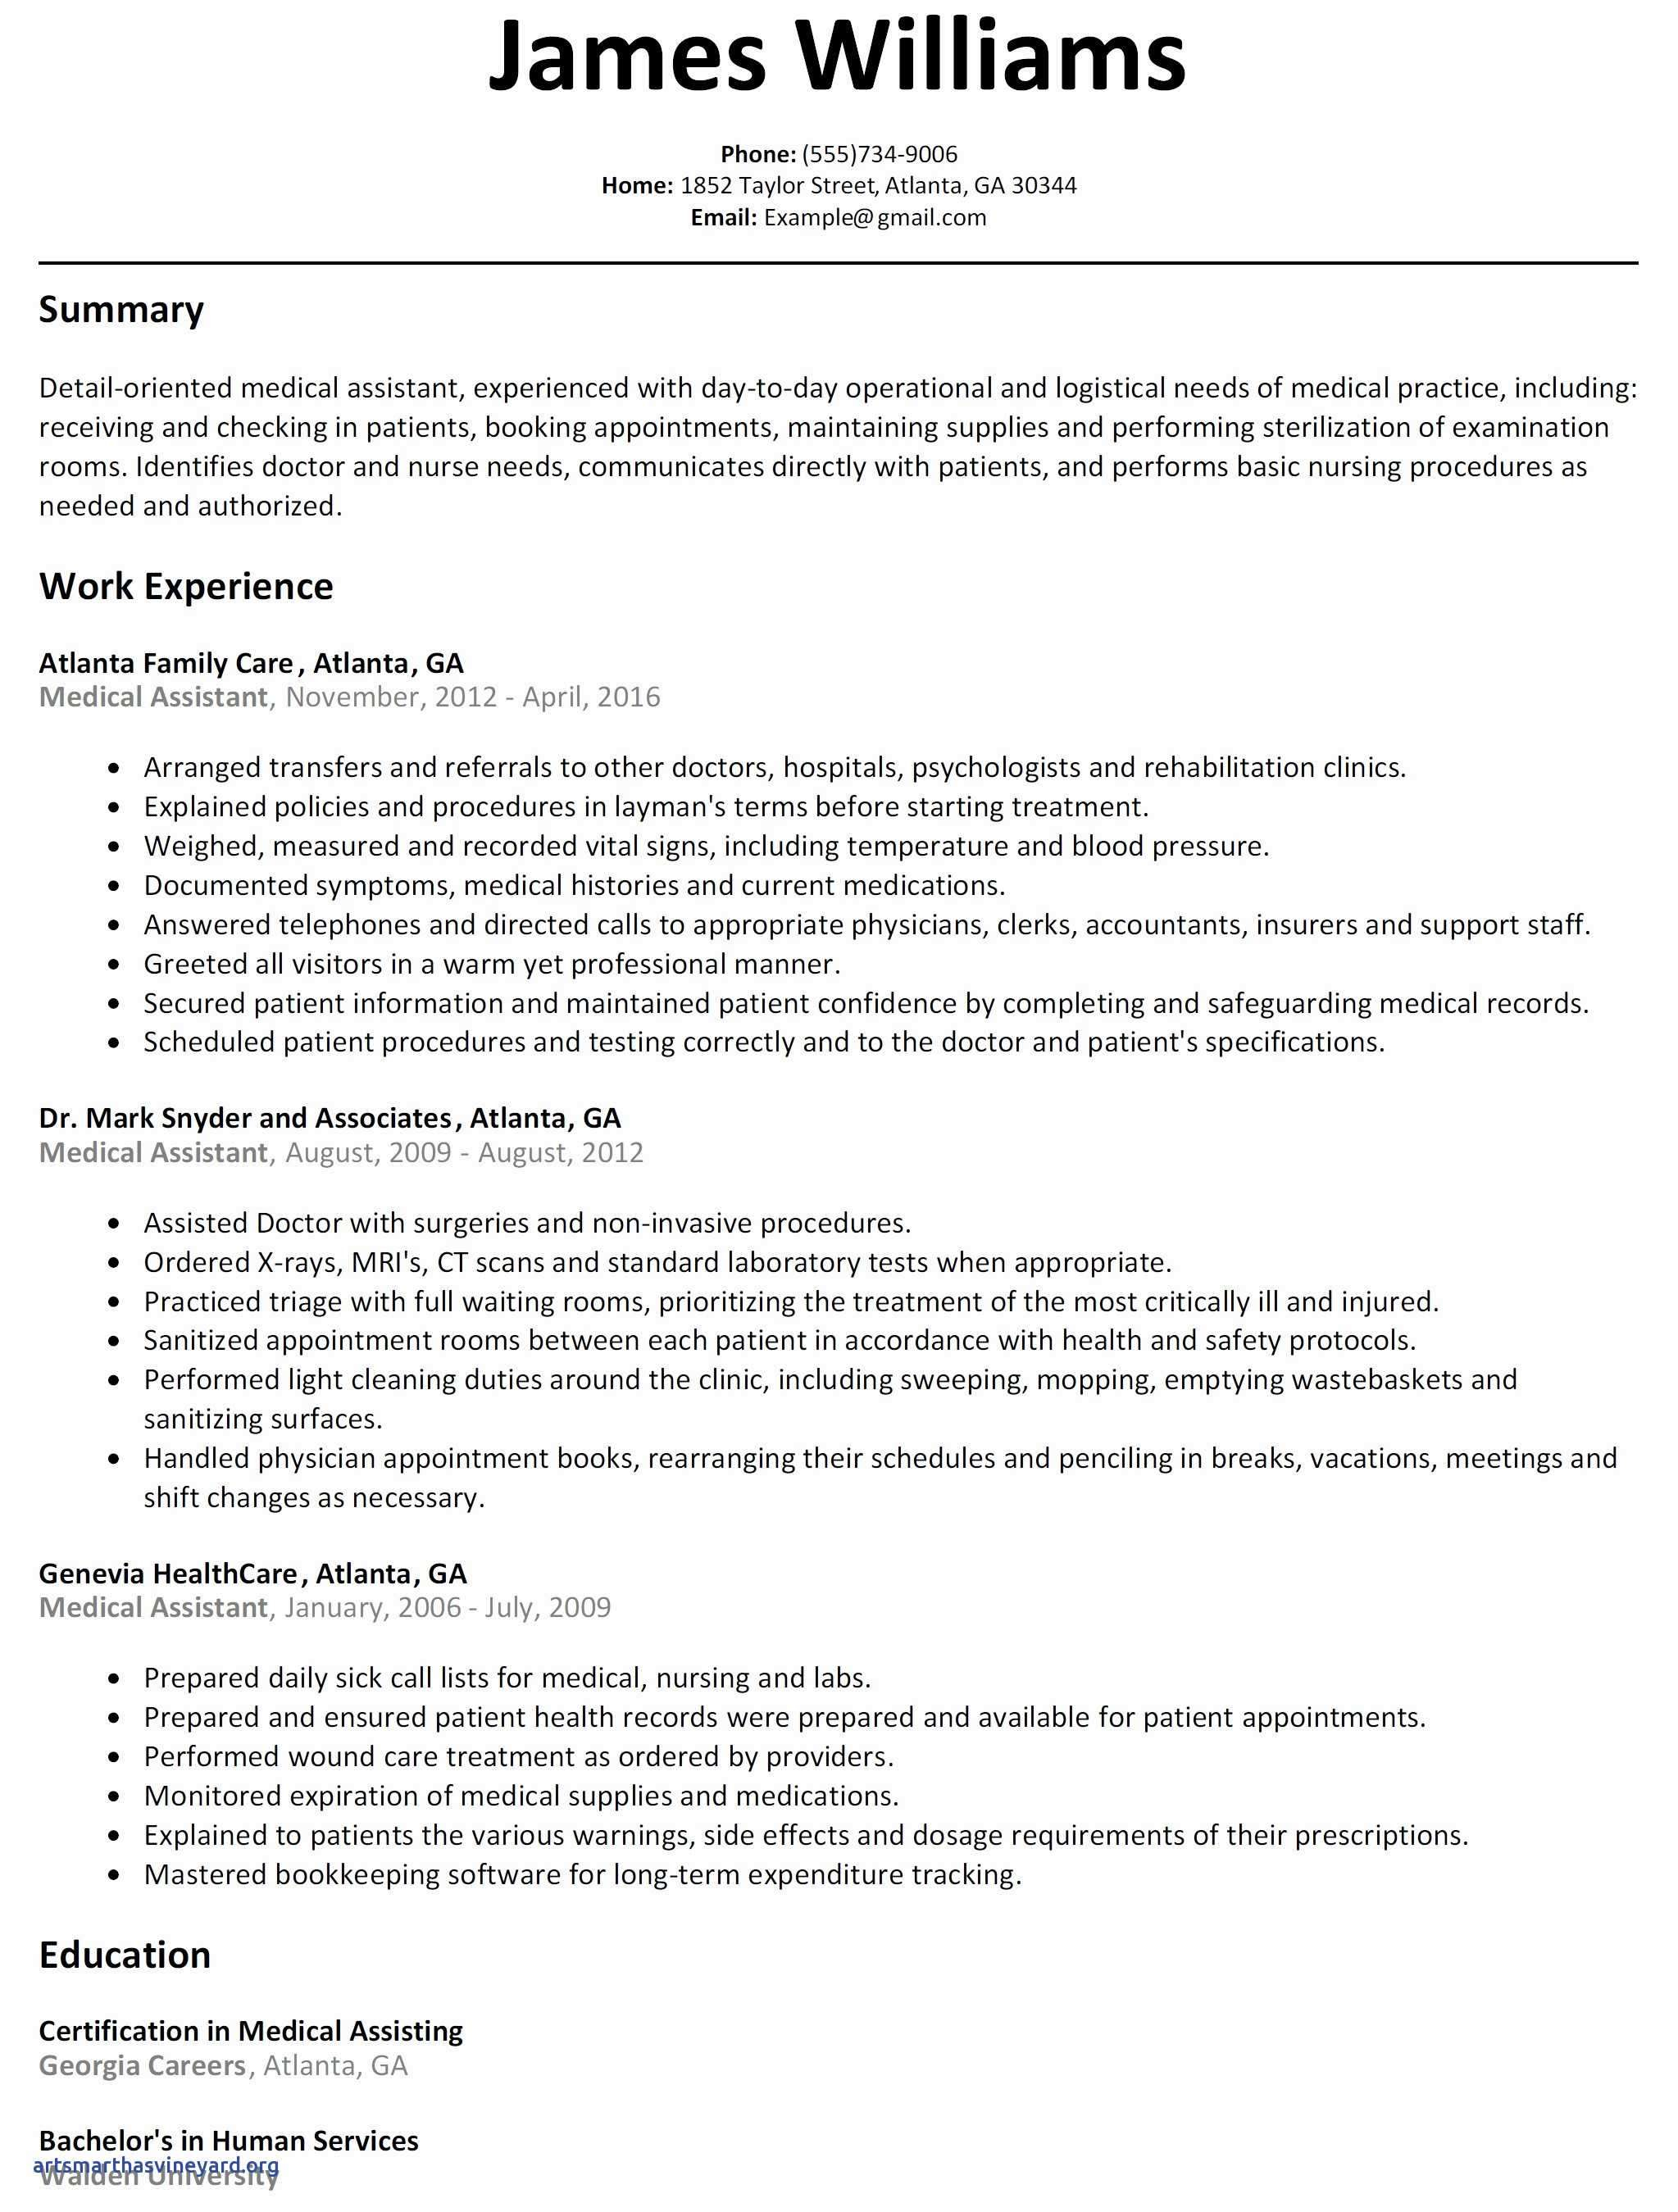 retail store manager resume template example-Retail Store Manager Resume Sample Unique Retail Resume Sample Awesome Resume Template Free Word New Od 5-o